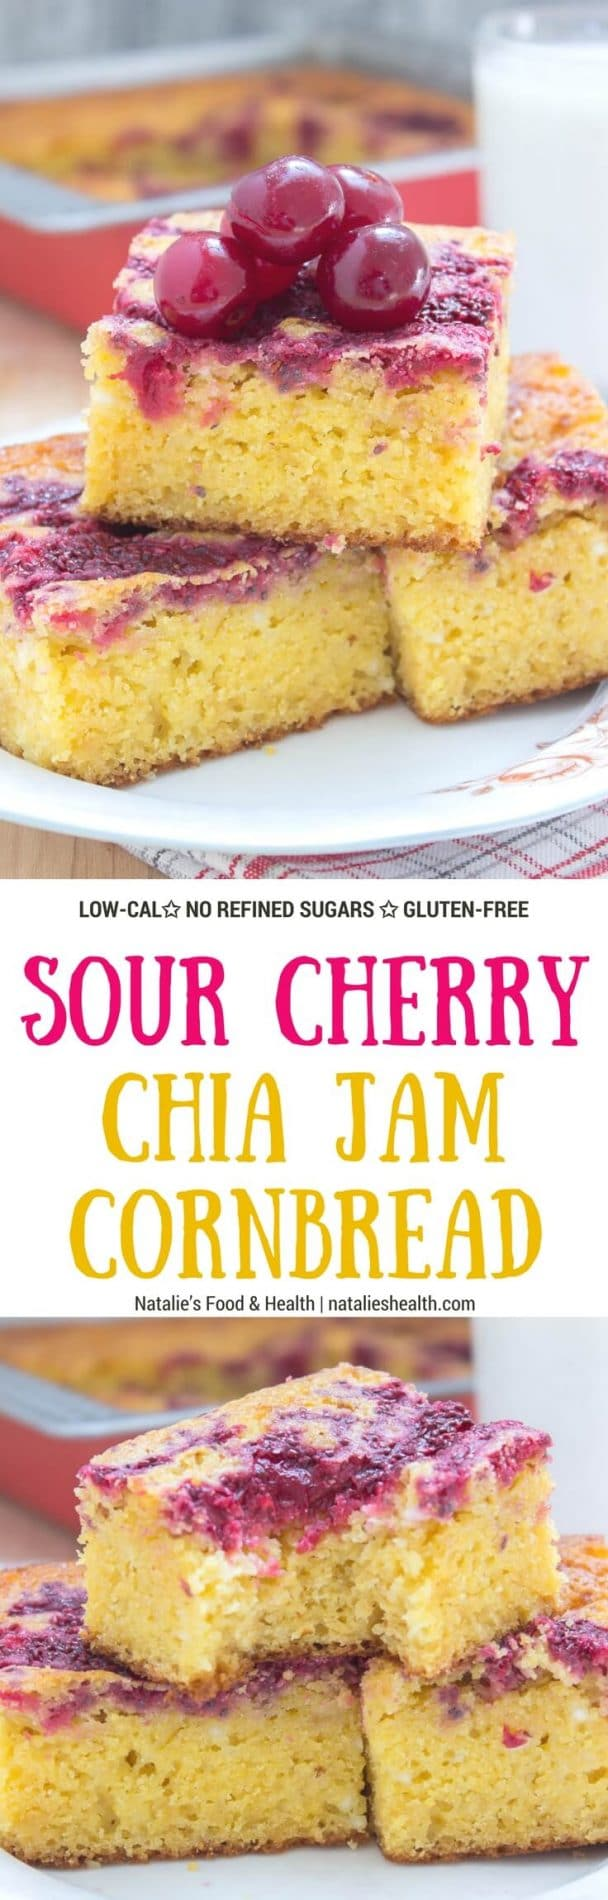 Moist, tender and full of corn flavor Sour Cherry Chia Jam Cornbread made with all HEALTH ingredients, refined sugar-free, wholesome and it's moderate in calories. Perfect for BBQ, holiday table or any celebration. #glutenfree #sugarfree #healthy #kidsfriendly #lowcalorie #whole30 #weightloss #bbq #summer #dessert #holiday #chia #cherry | natalieshealth.com